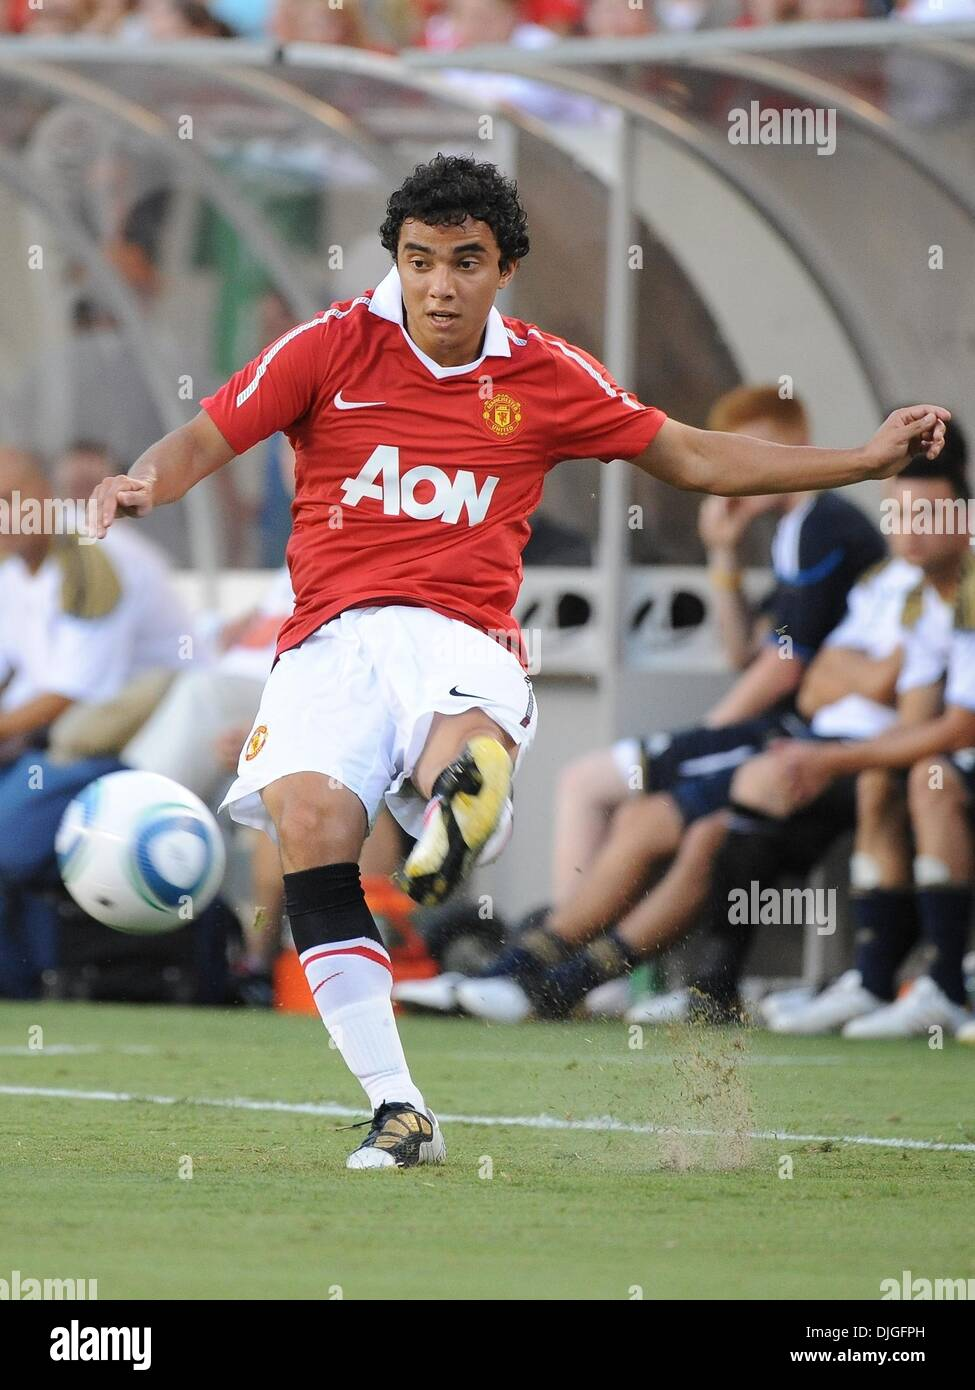 July 21, 2010 - Philadelphia, PA, United States of America - 21 July 2010 - Manchester United Defender Rafael DiSilva (#21) plays a through ball. The Eighteen times English Premier League Champion Manchester United face Major League Soccer's newest team, The Philadelphia Union, at Lincoln Financial Field in Philadelphia, PA. THe visitors won 1-0. Mandatory credit: Brooks Von Arx, J - Stock Image